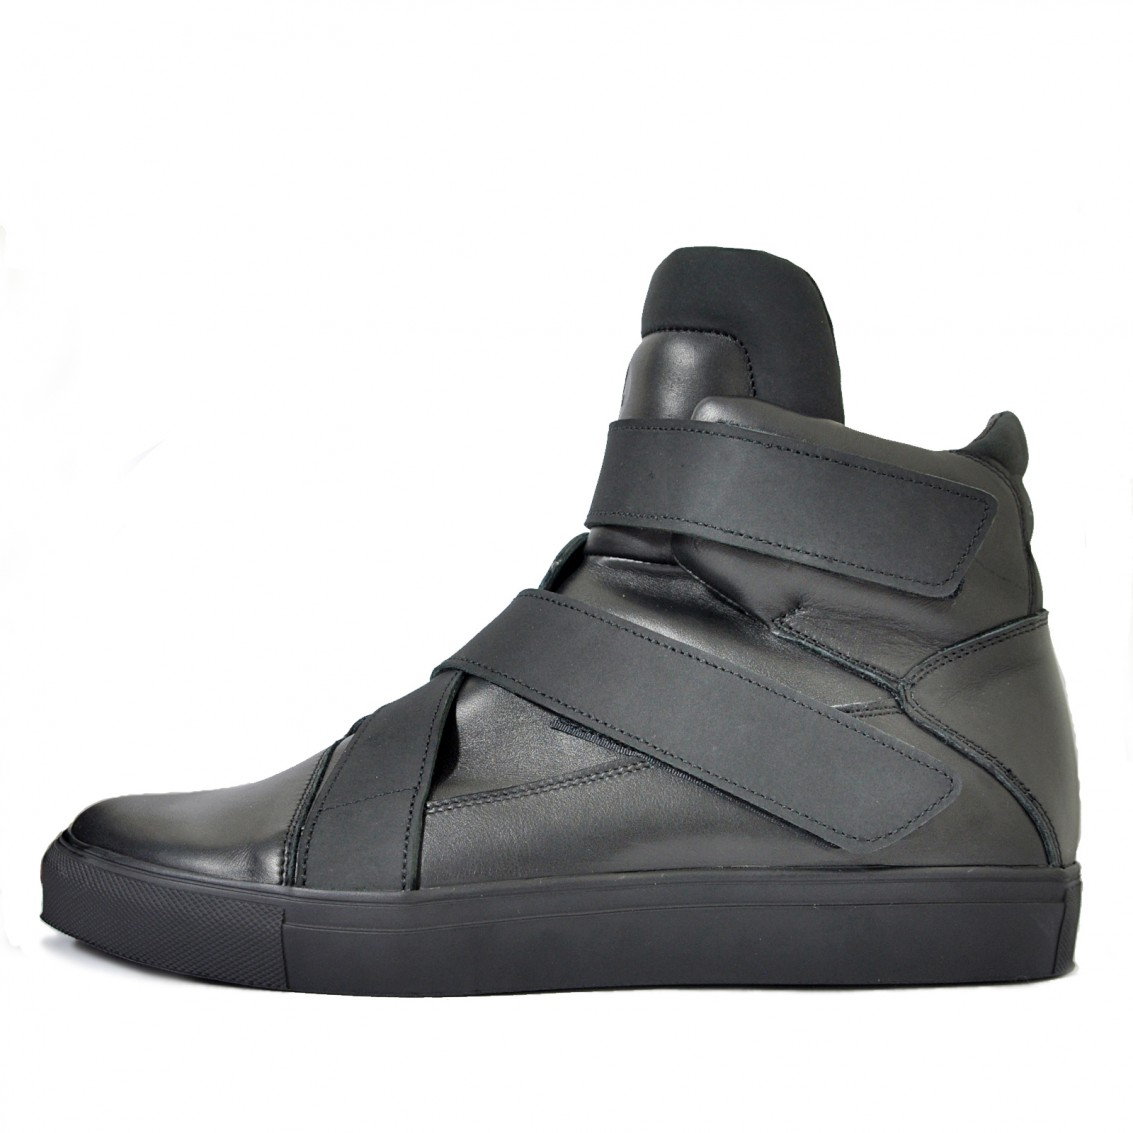 Asymmetrical high-top sneakers with velcro